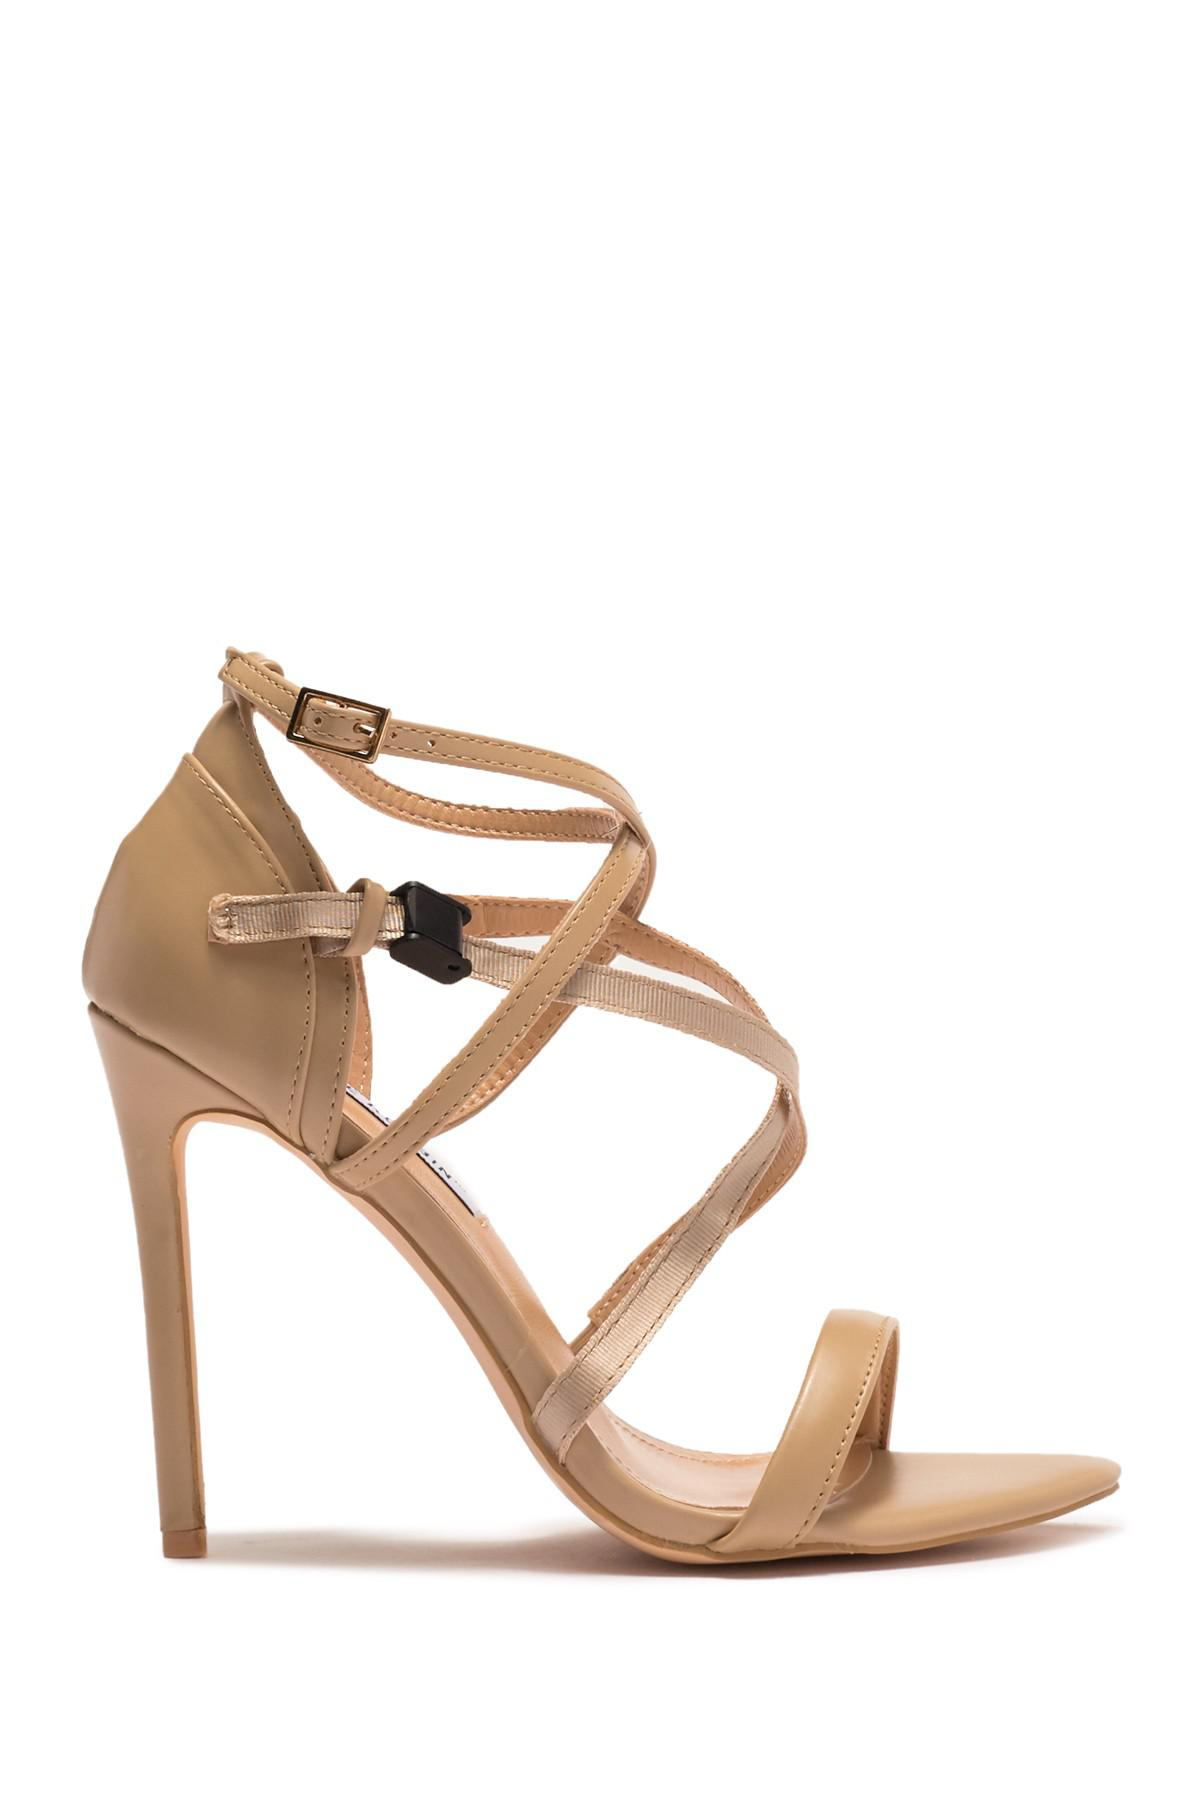 9328ca0fc Cape Robbin Rumor Caged Sandal in Natural - Lyst